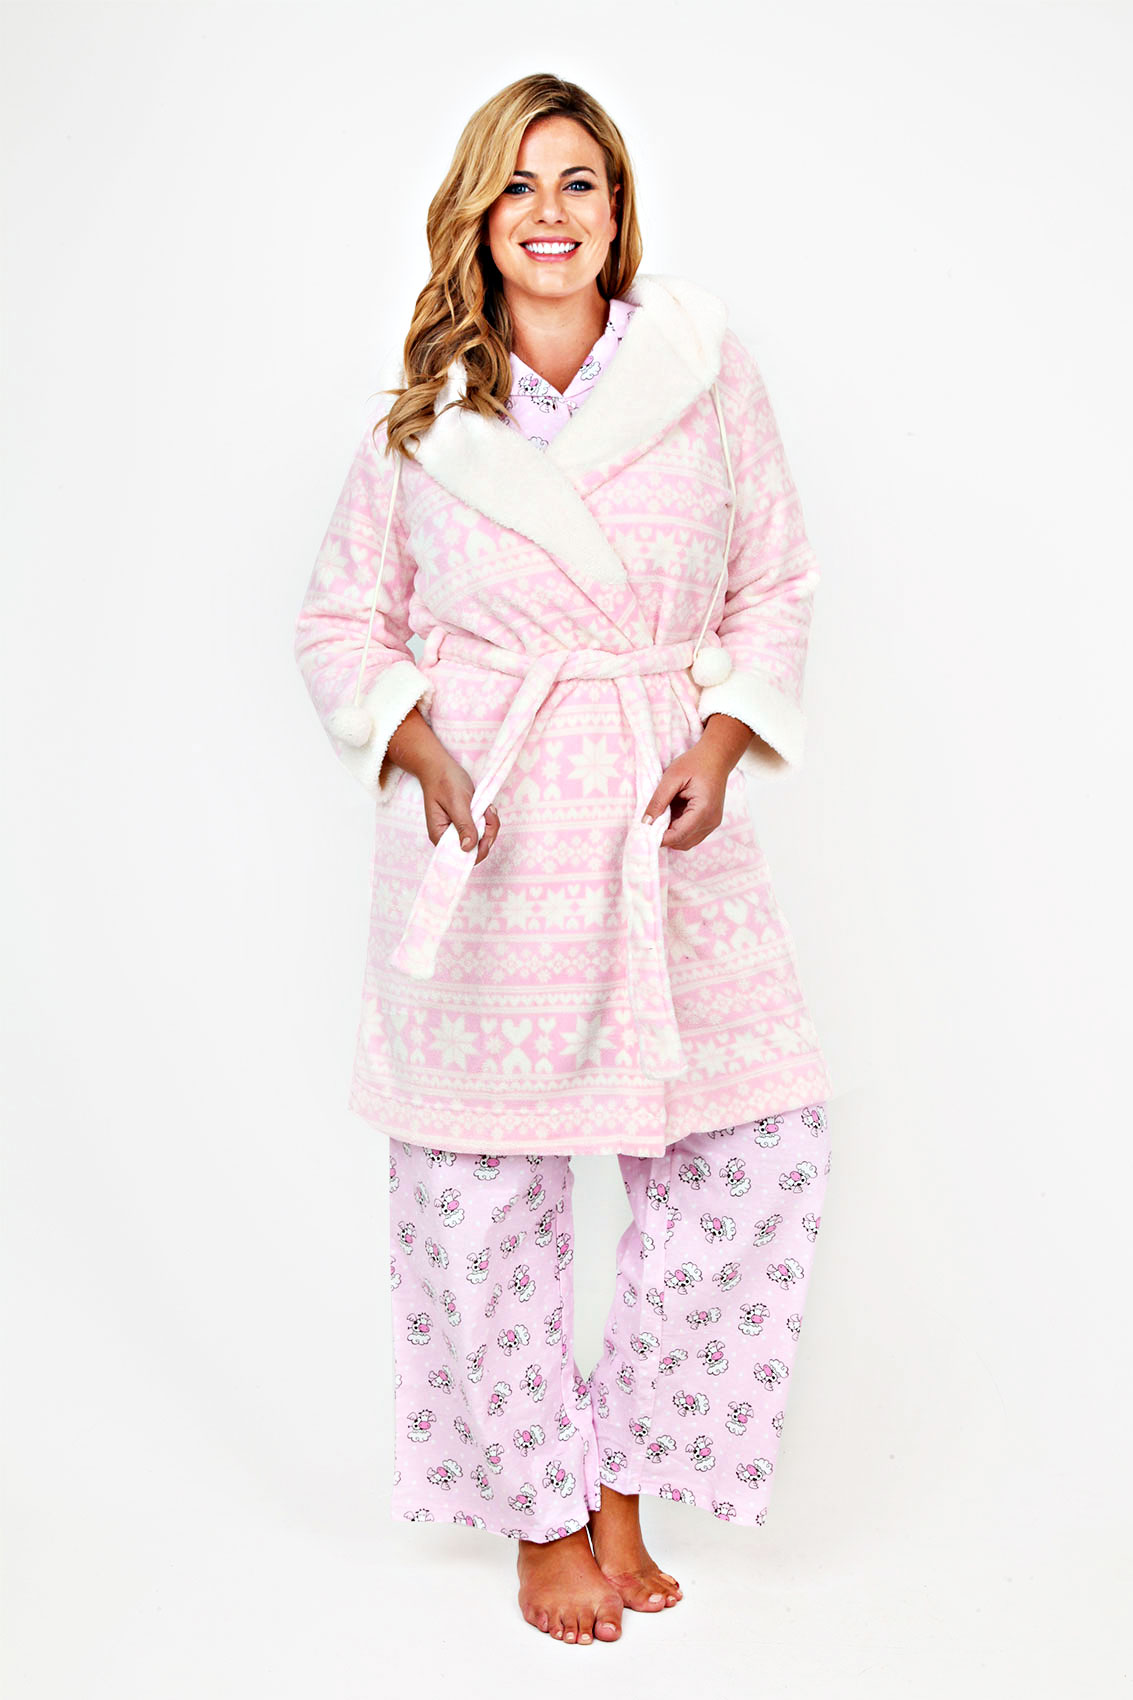 Buy Dressing gowns from the Womens department at Debenhams. You'll find the widest range of Dressing gowns products online and delivered to your door. Shop today! Light pink waffle trim dressing gown Save. Was £ Now £ Lands' End White womens plus classic terry robe Save. Was £ Now £ The Collection.